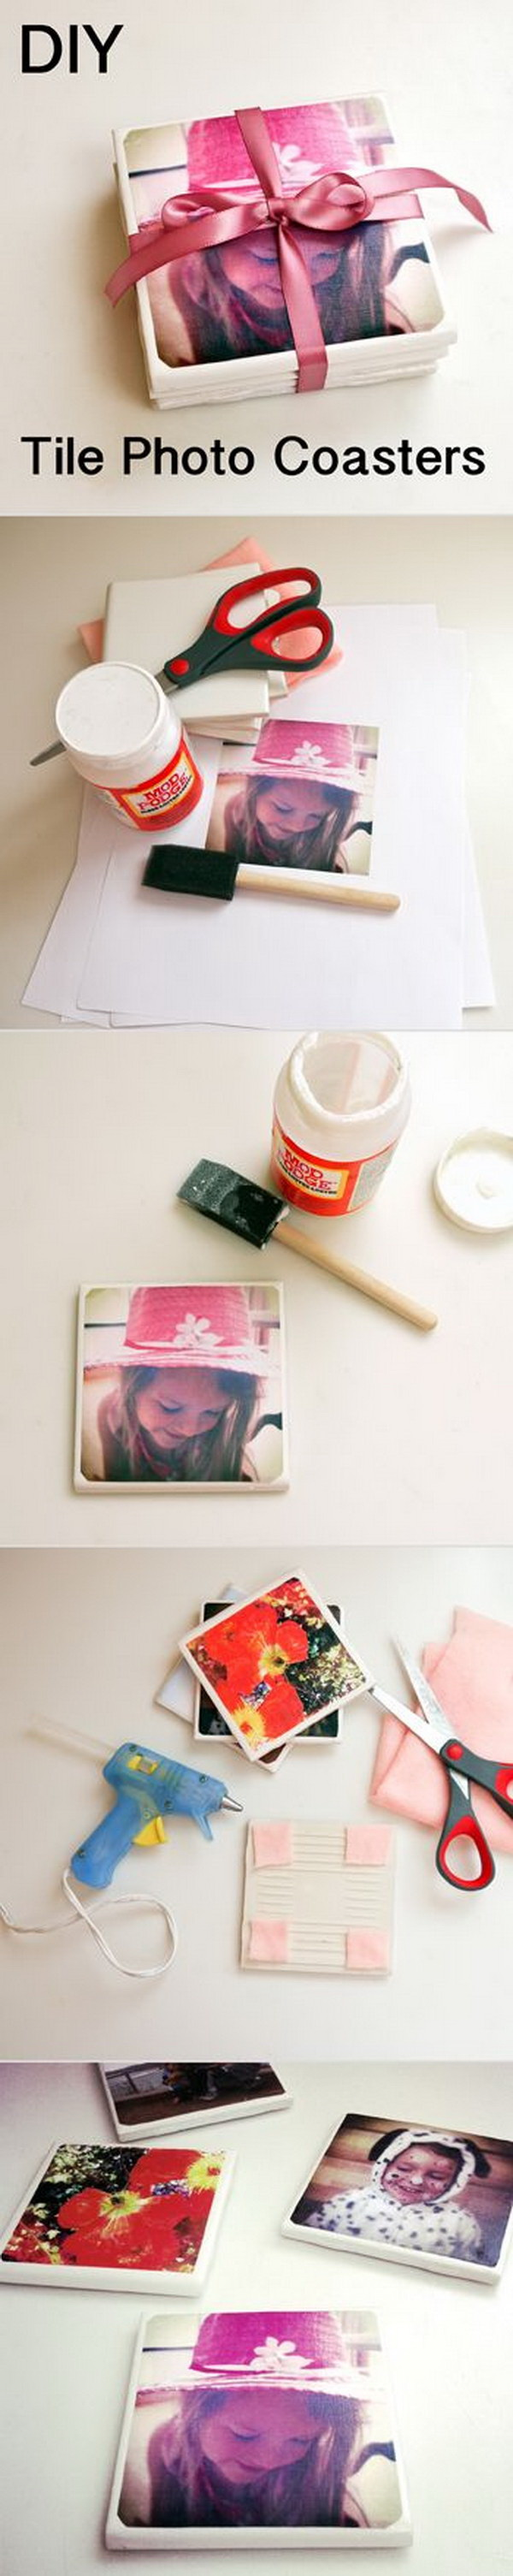 DIY Tile Photo Coasters. Photo gifts always make great gift idea, especially for mom, grandmo or  all the special mothers in your life.